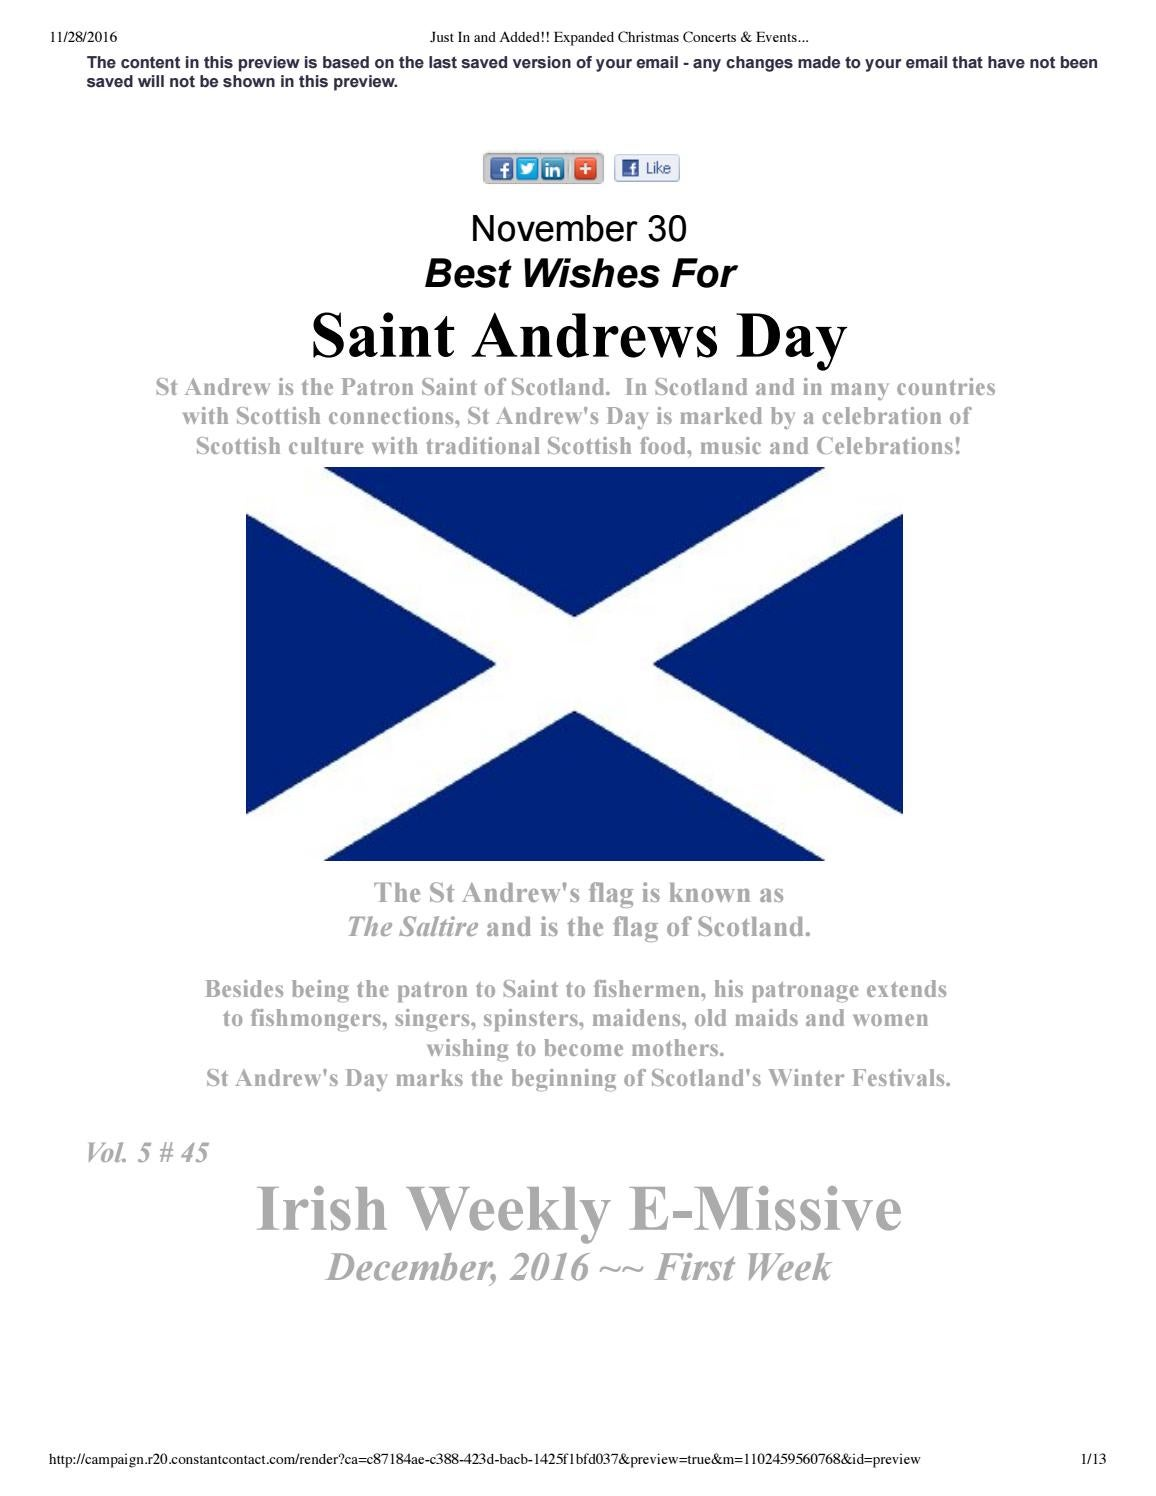 Happy St. Andrew\'s Day! Expanded Christmas concerts & events by ...